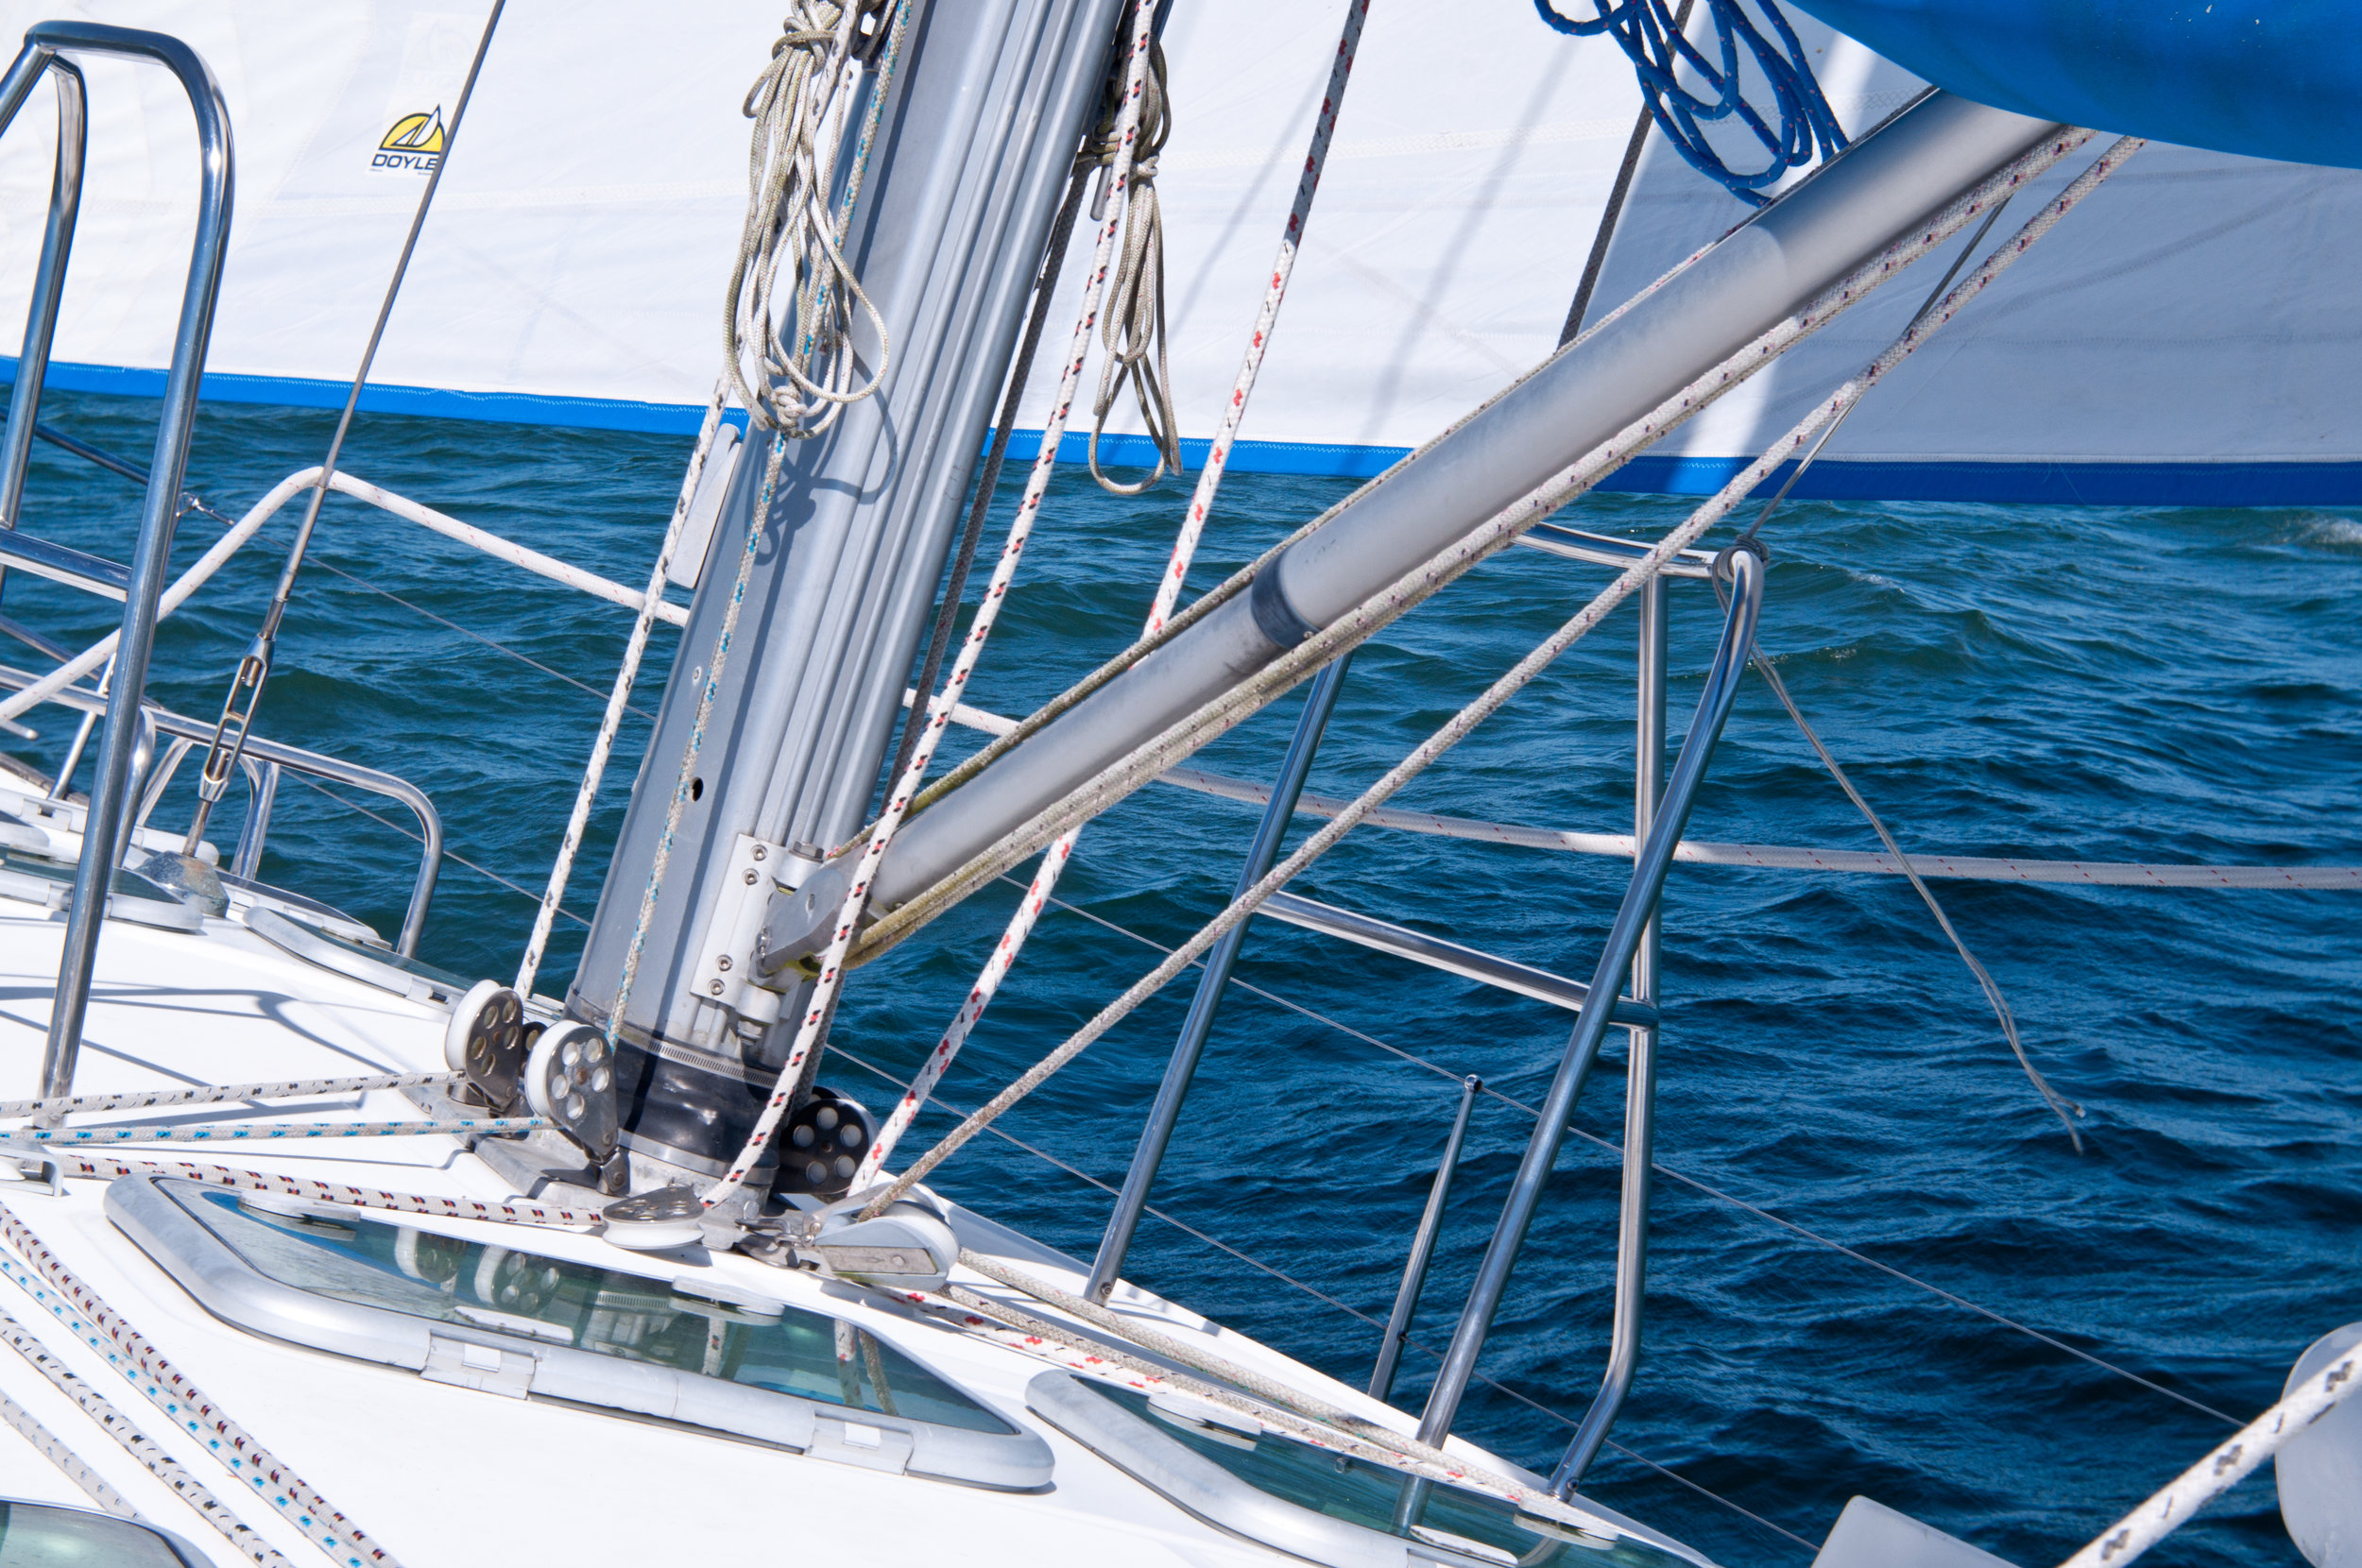 Fenwick Photo Arts_Sailing Samples-12.jpg